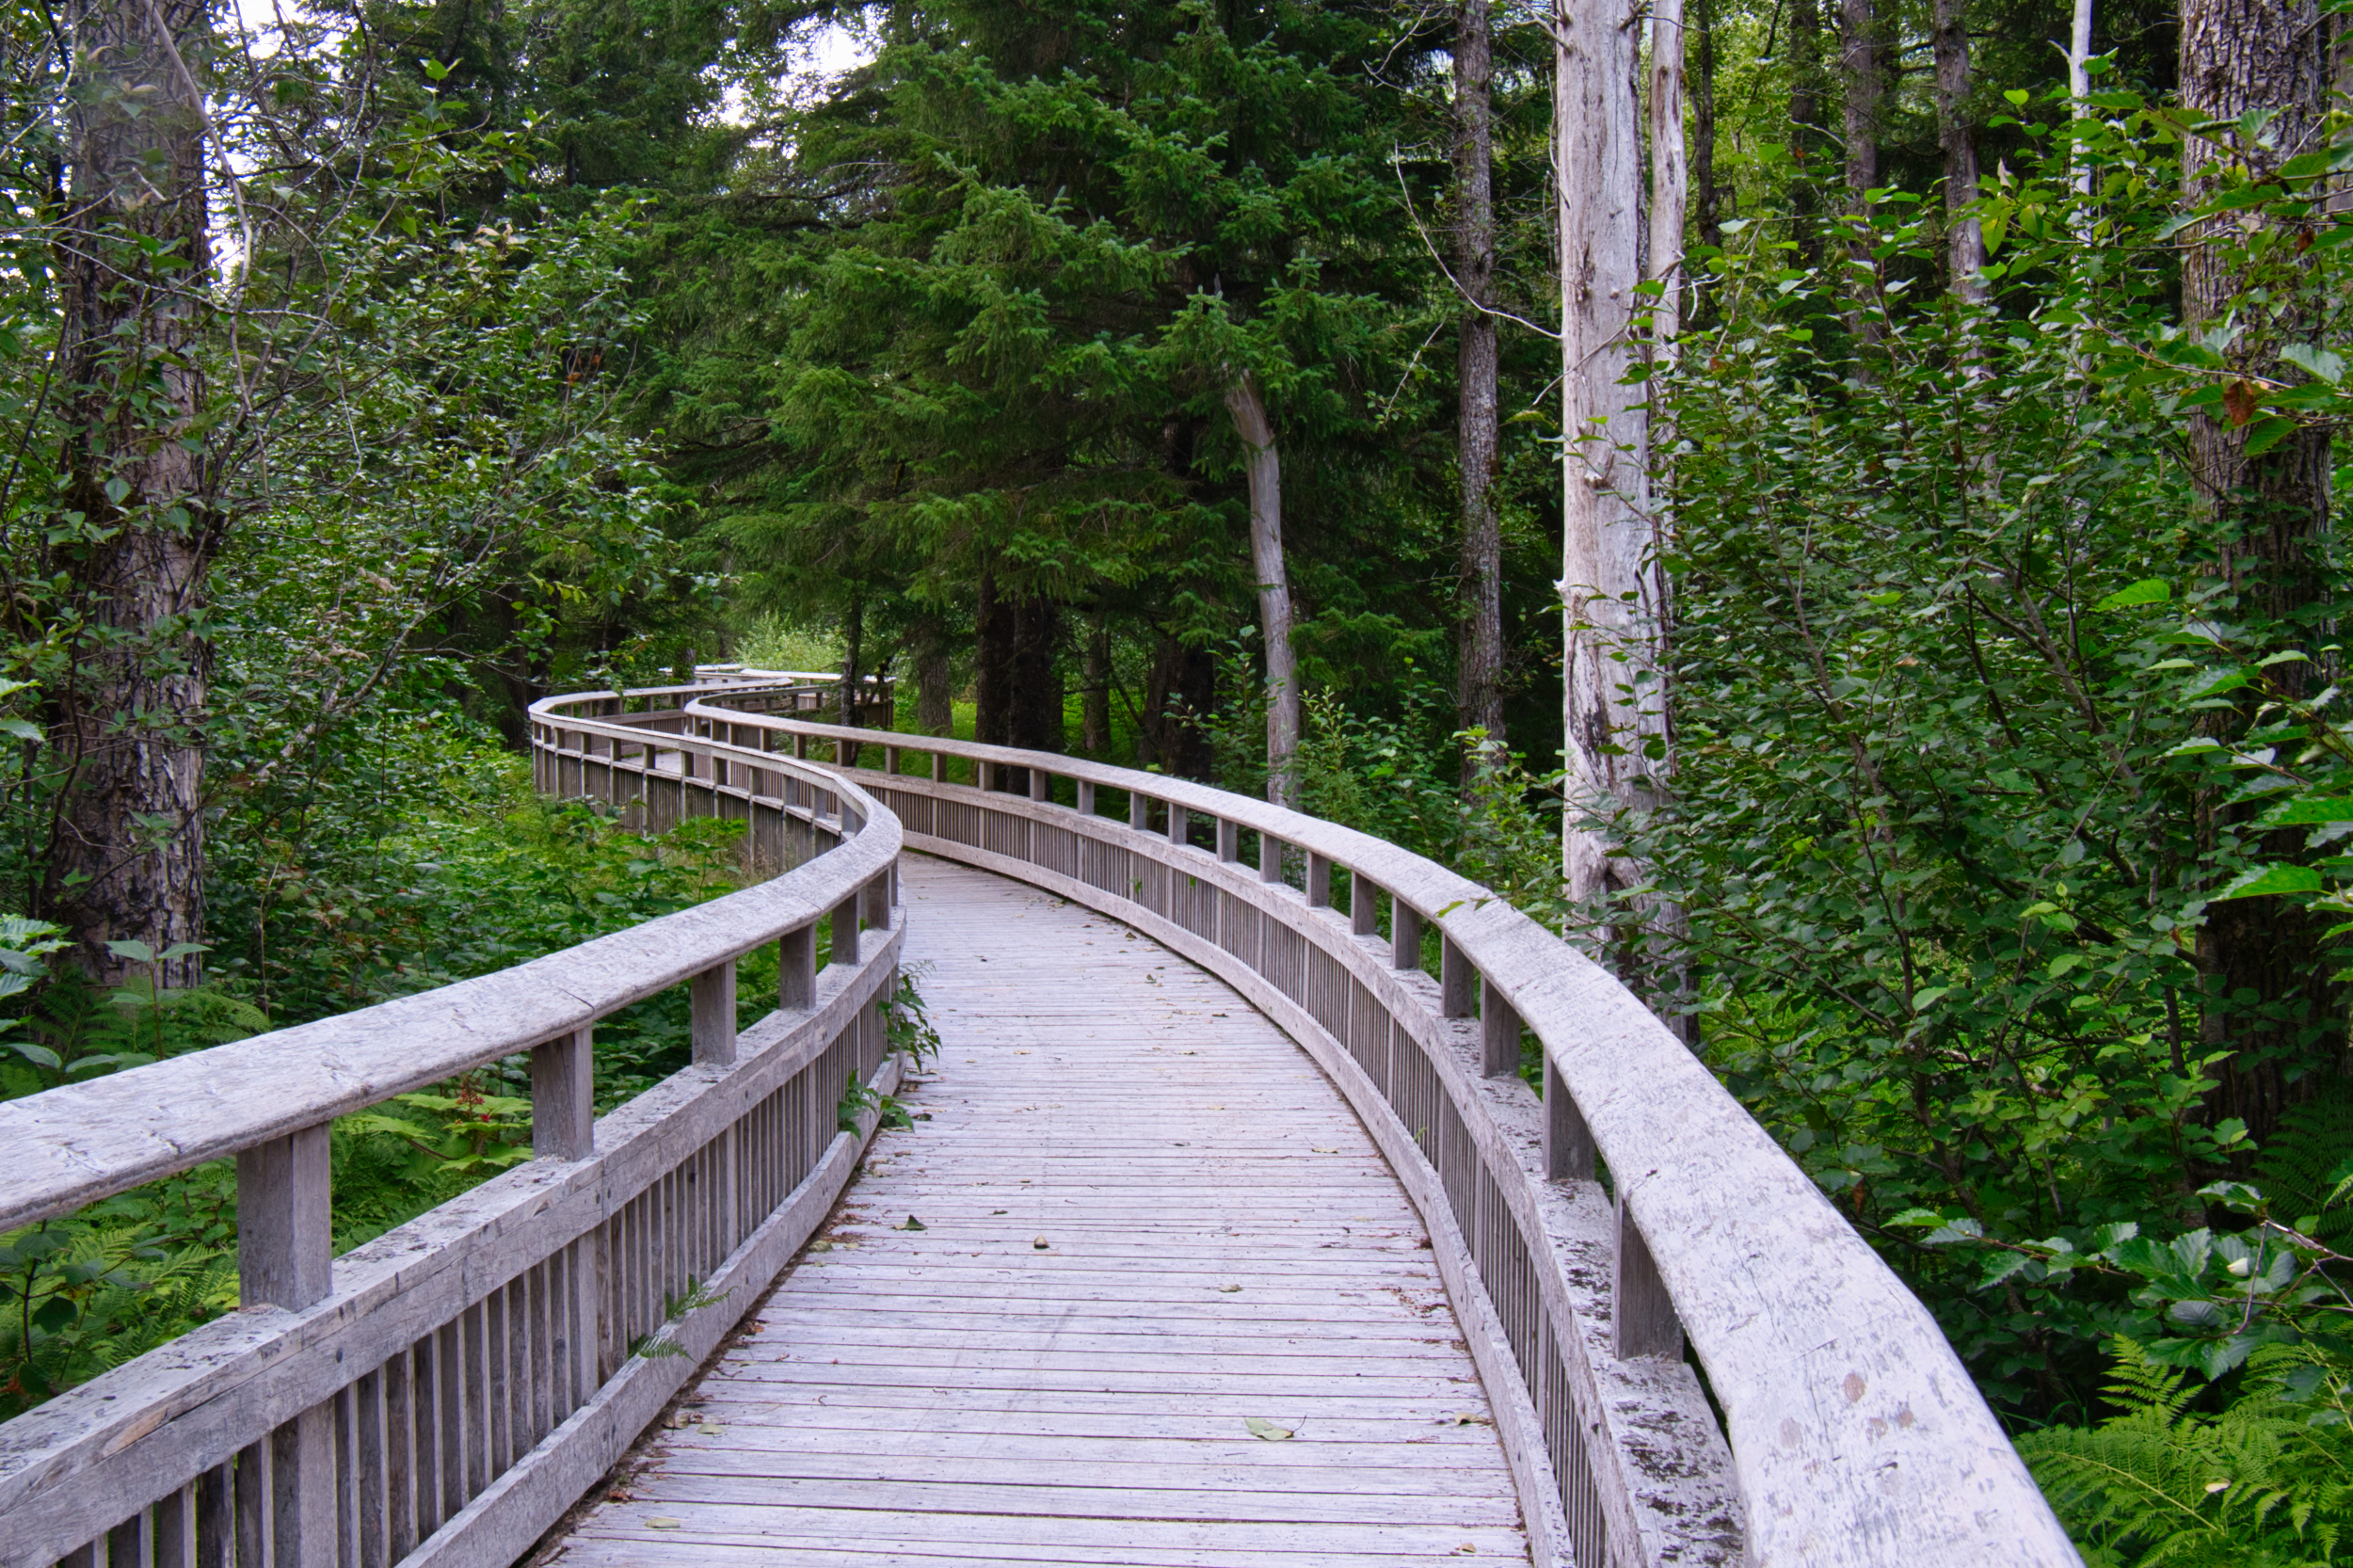 A section of the Blue Ice Trail near Portage Glacier was a raised boardwalk through the forest. Really nice.